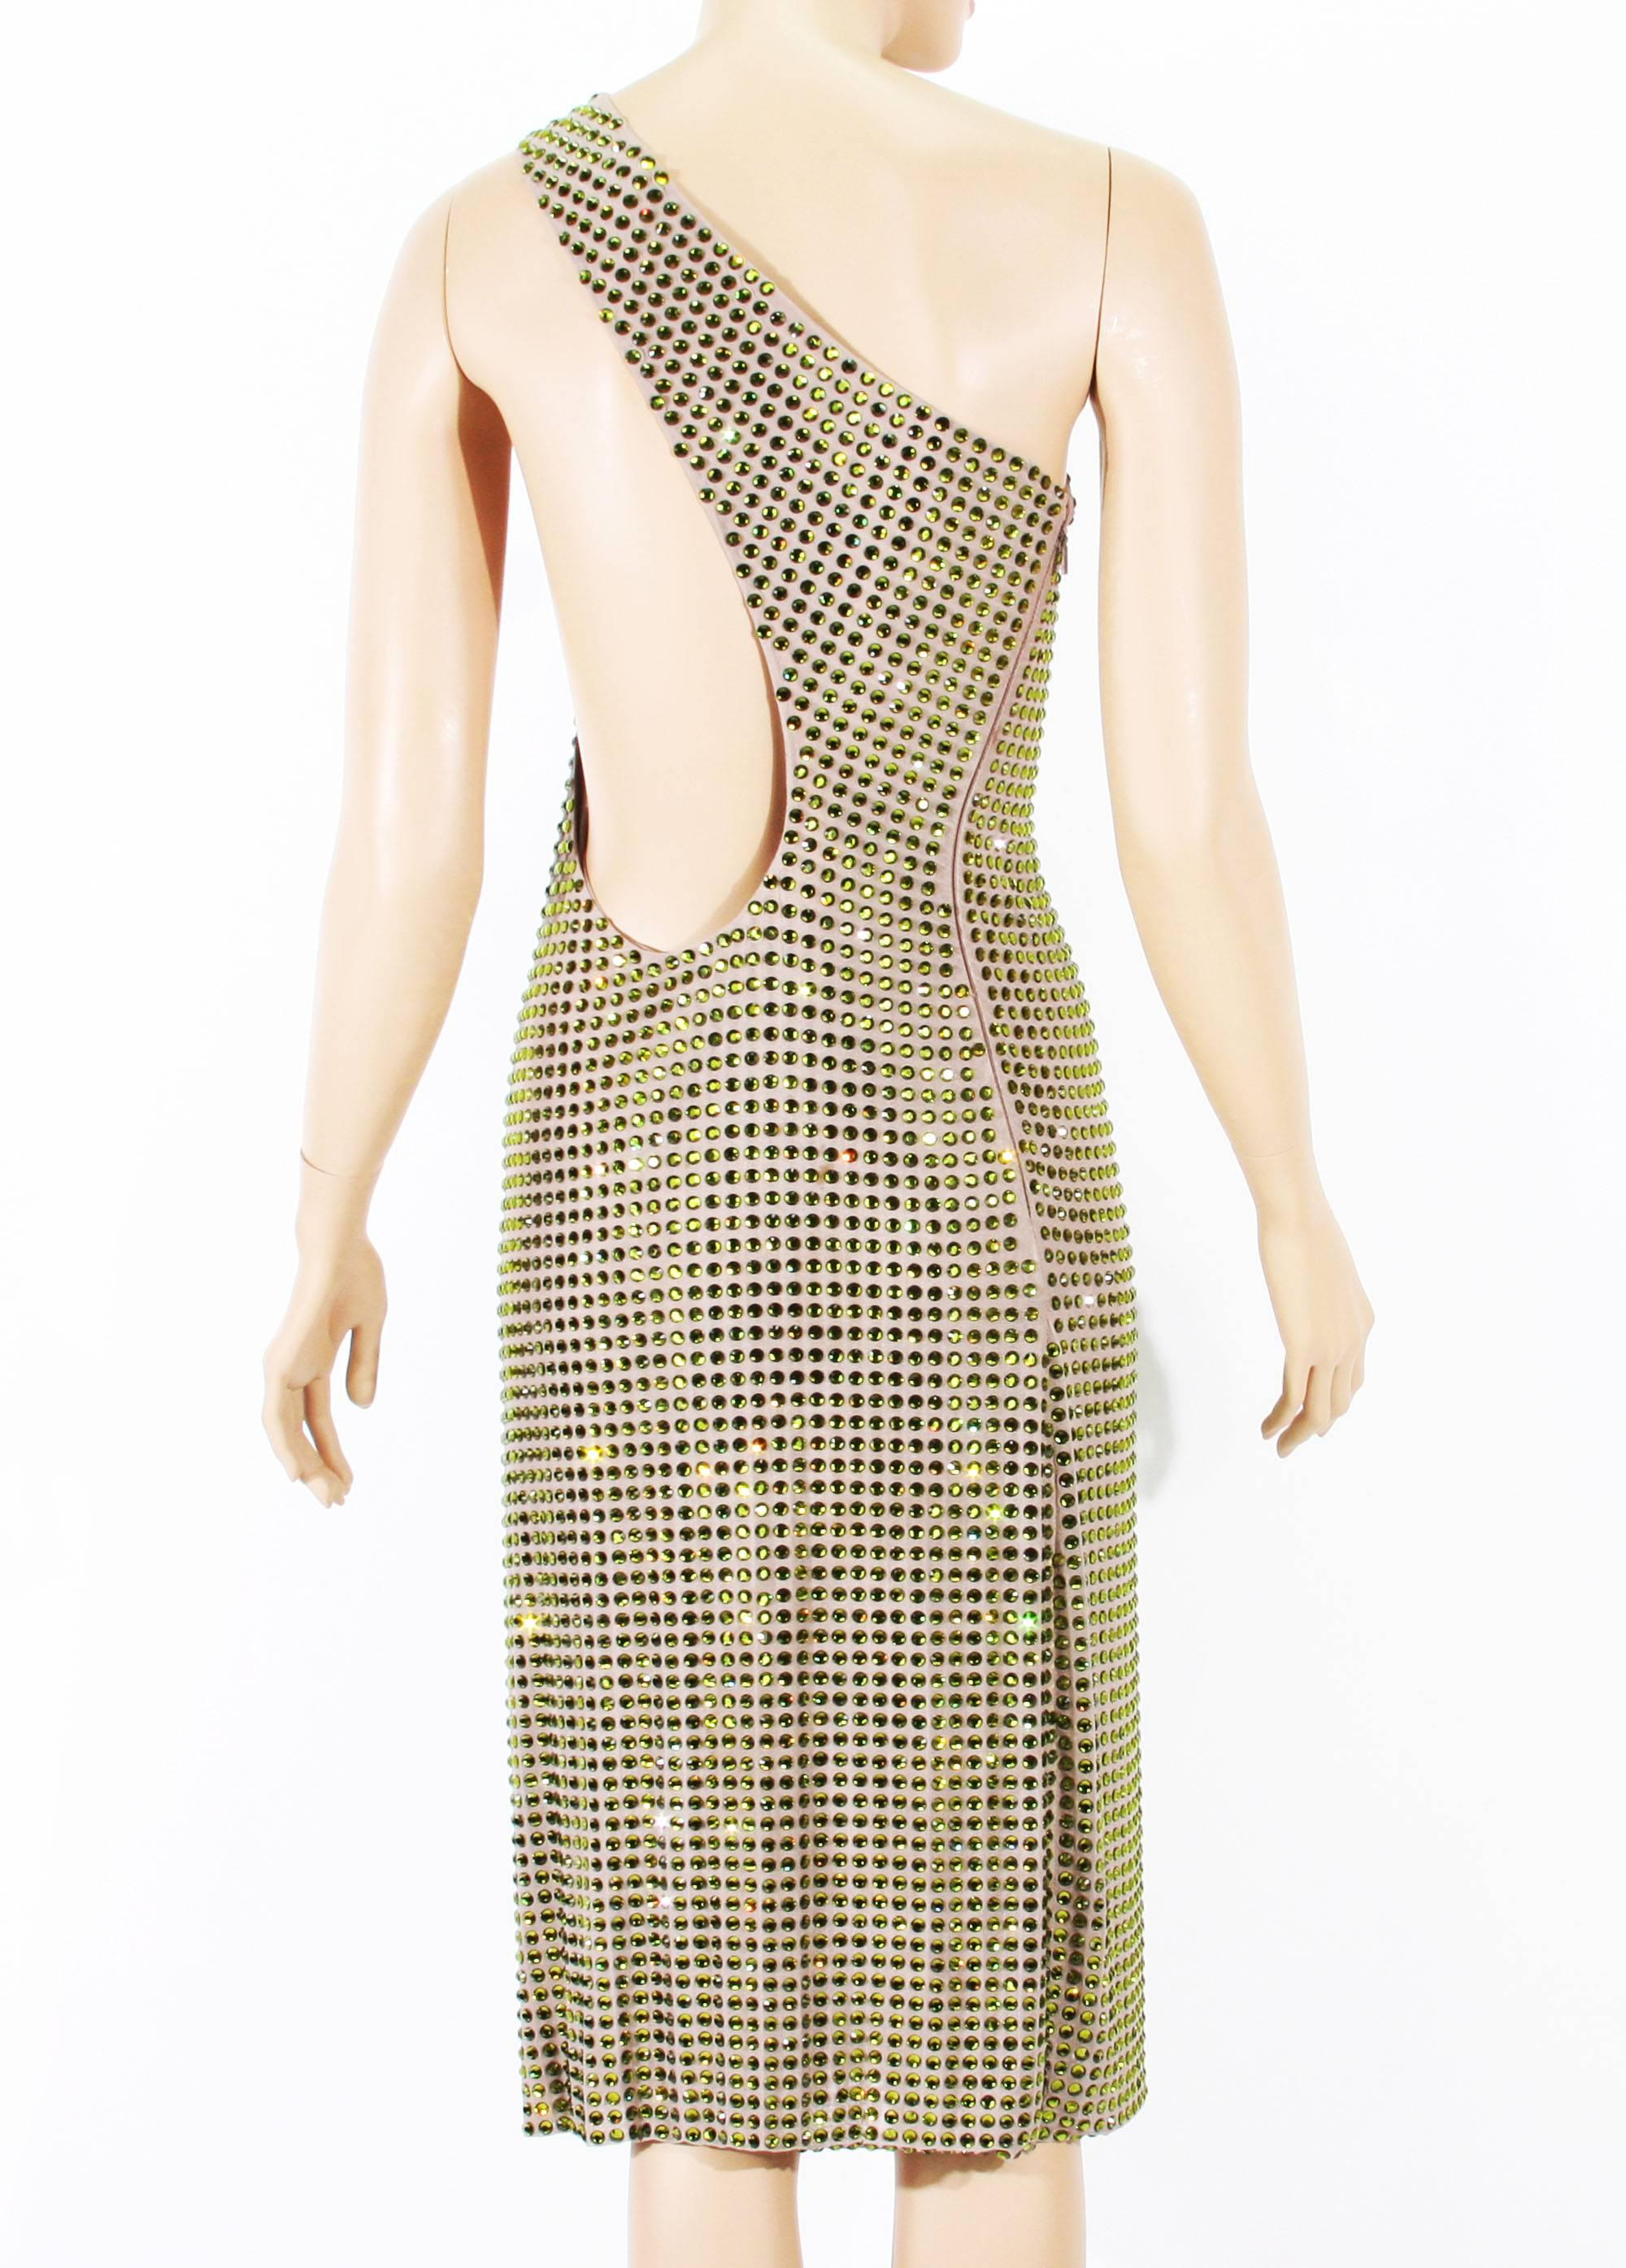 7b8447df607 Tom Ford for Gucci SS 2000 Runway Fully Crystal Embellished Open Back Dress  42 For Sale at 1stdibs